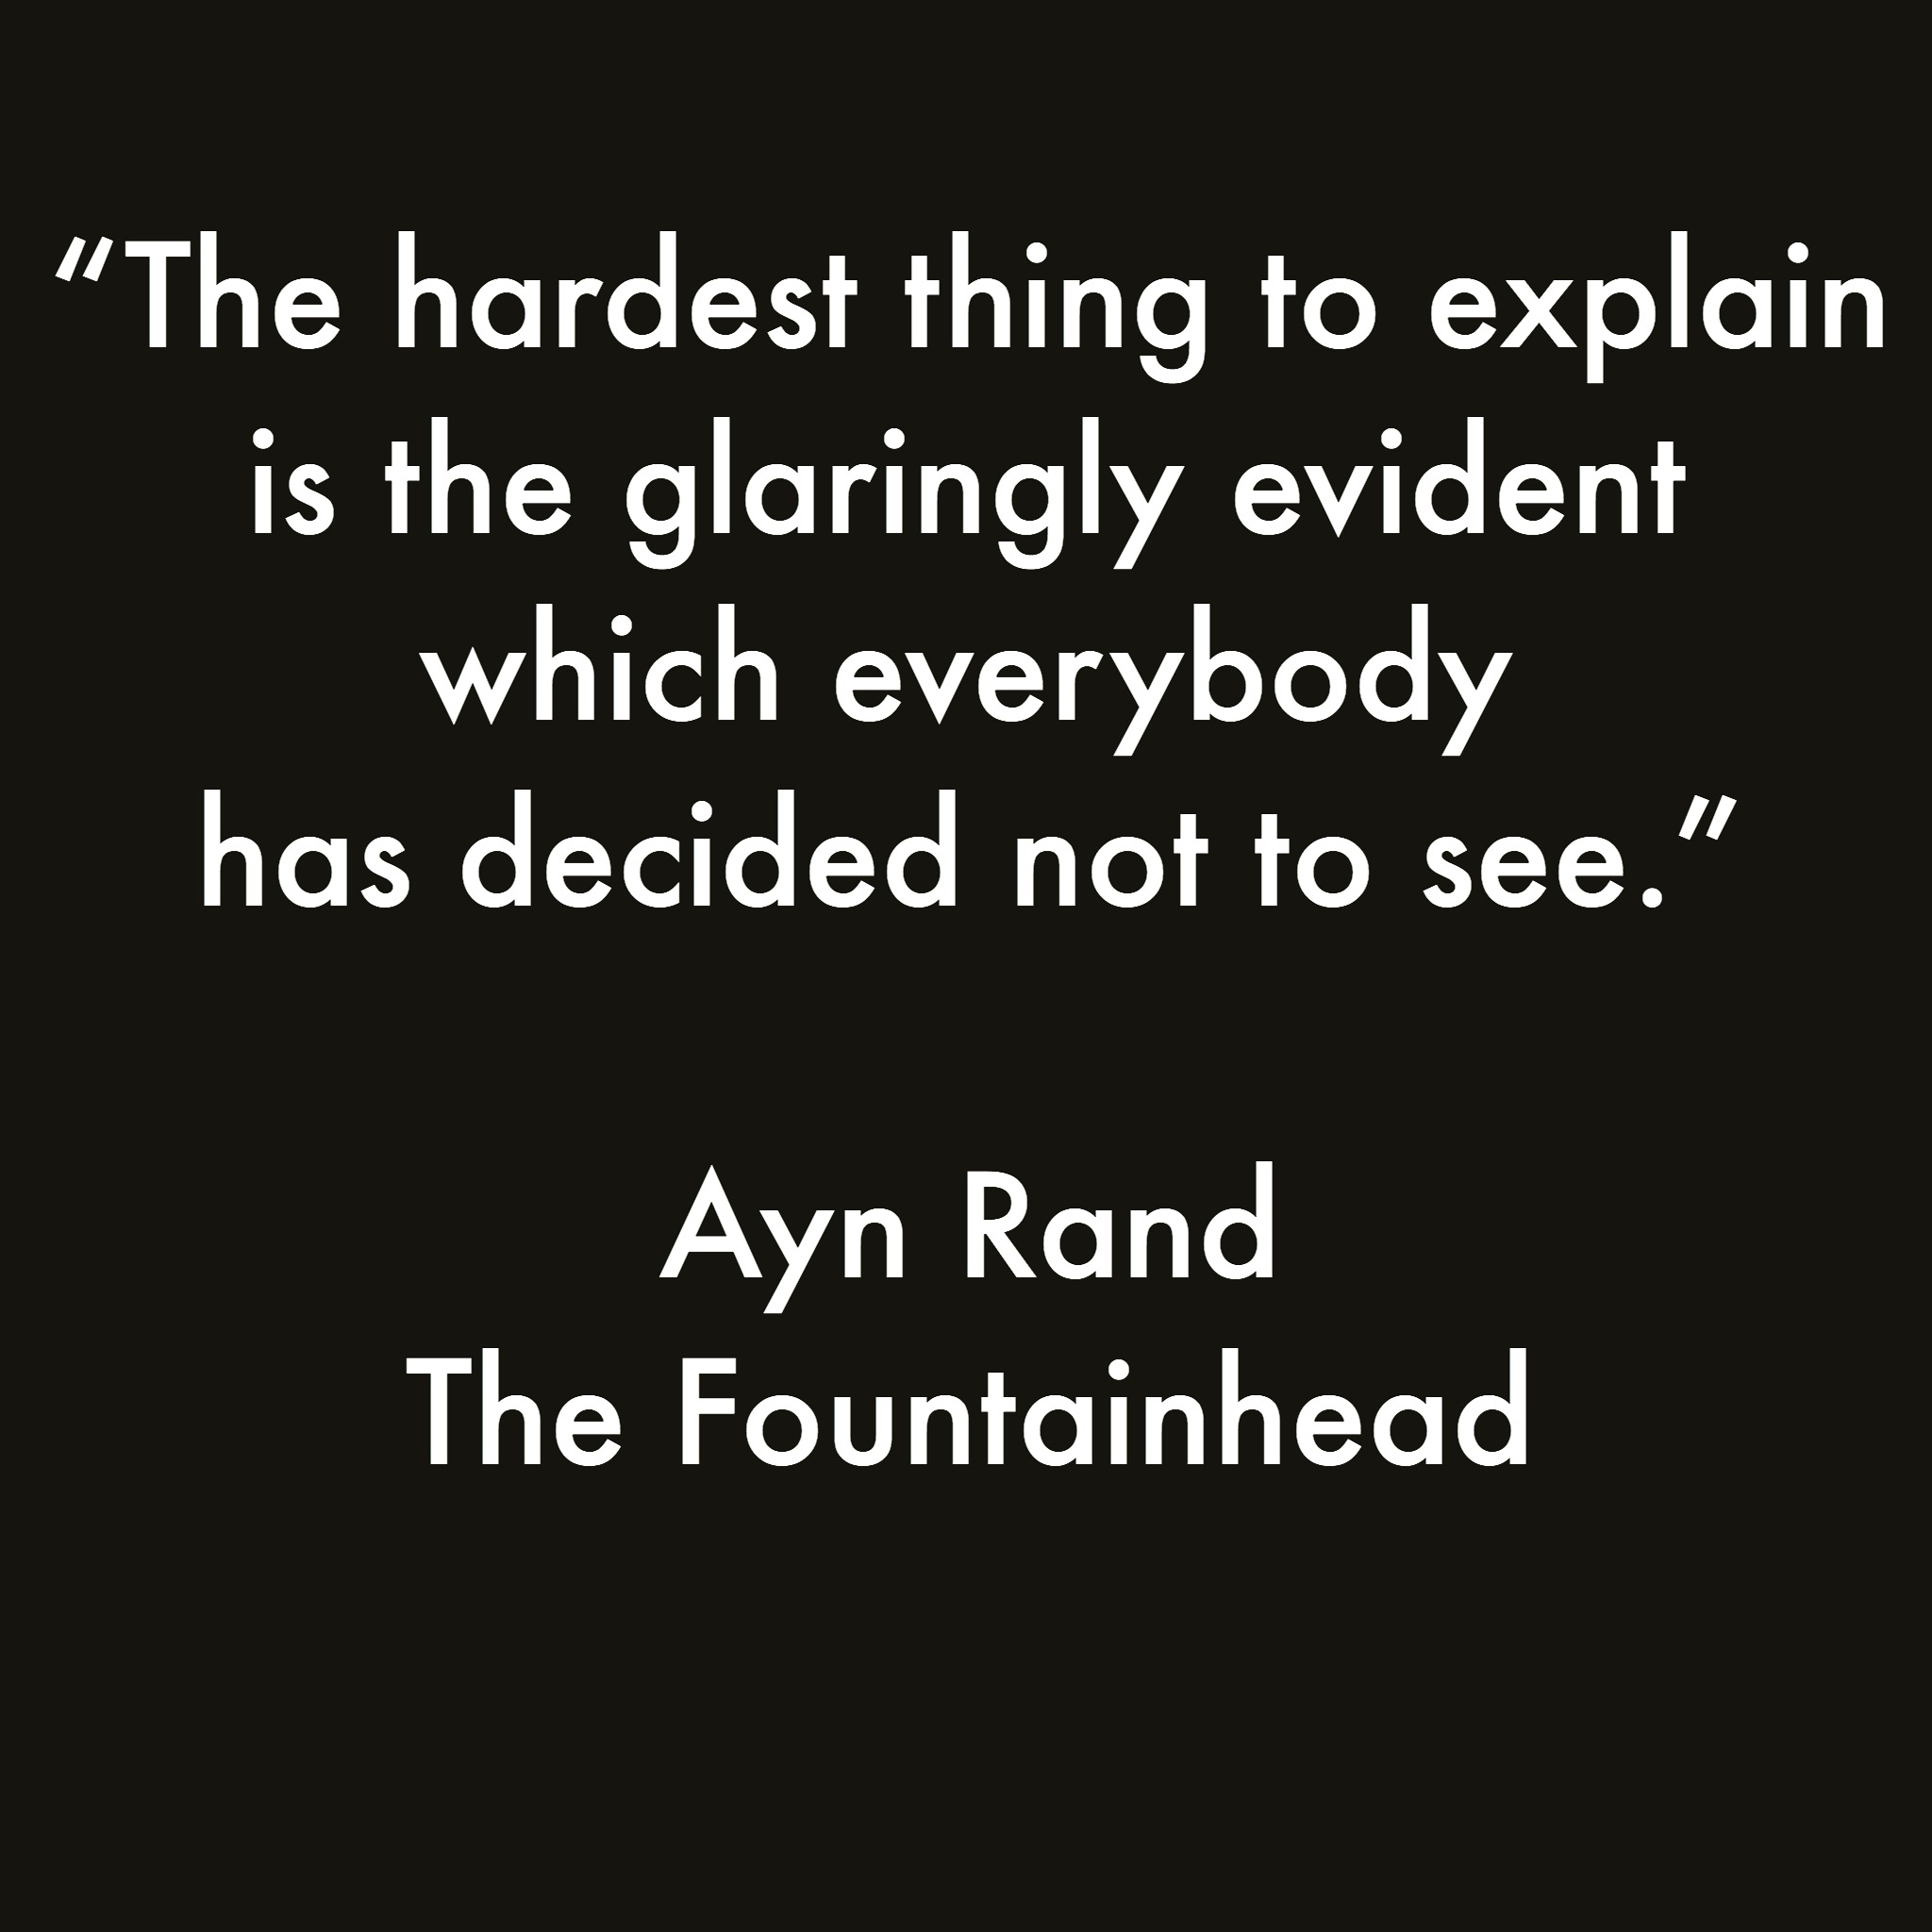 Day 3 The Fountainhead